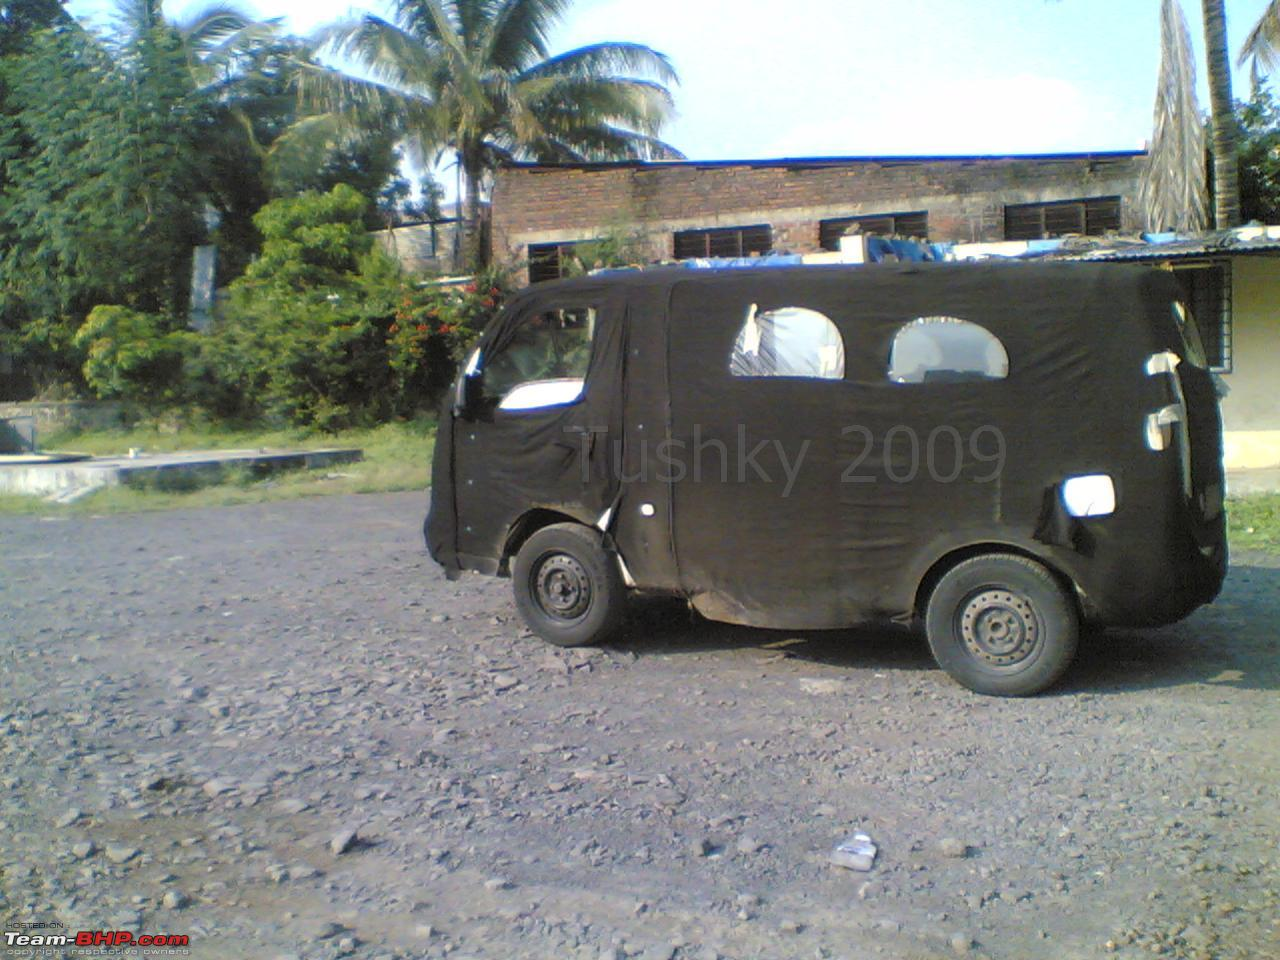 232597d1258886574-scoop-tata-ace-van-kil